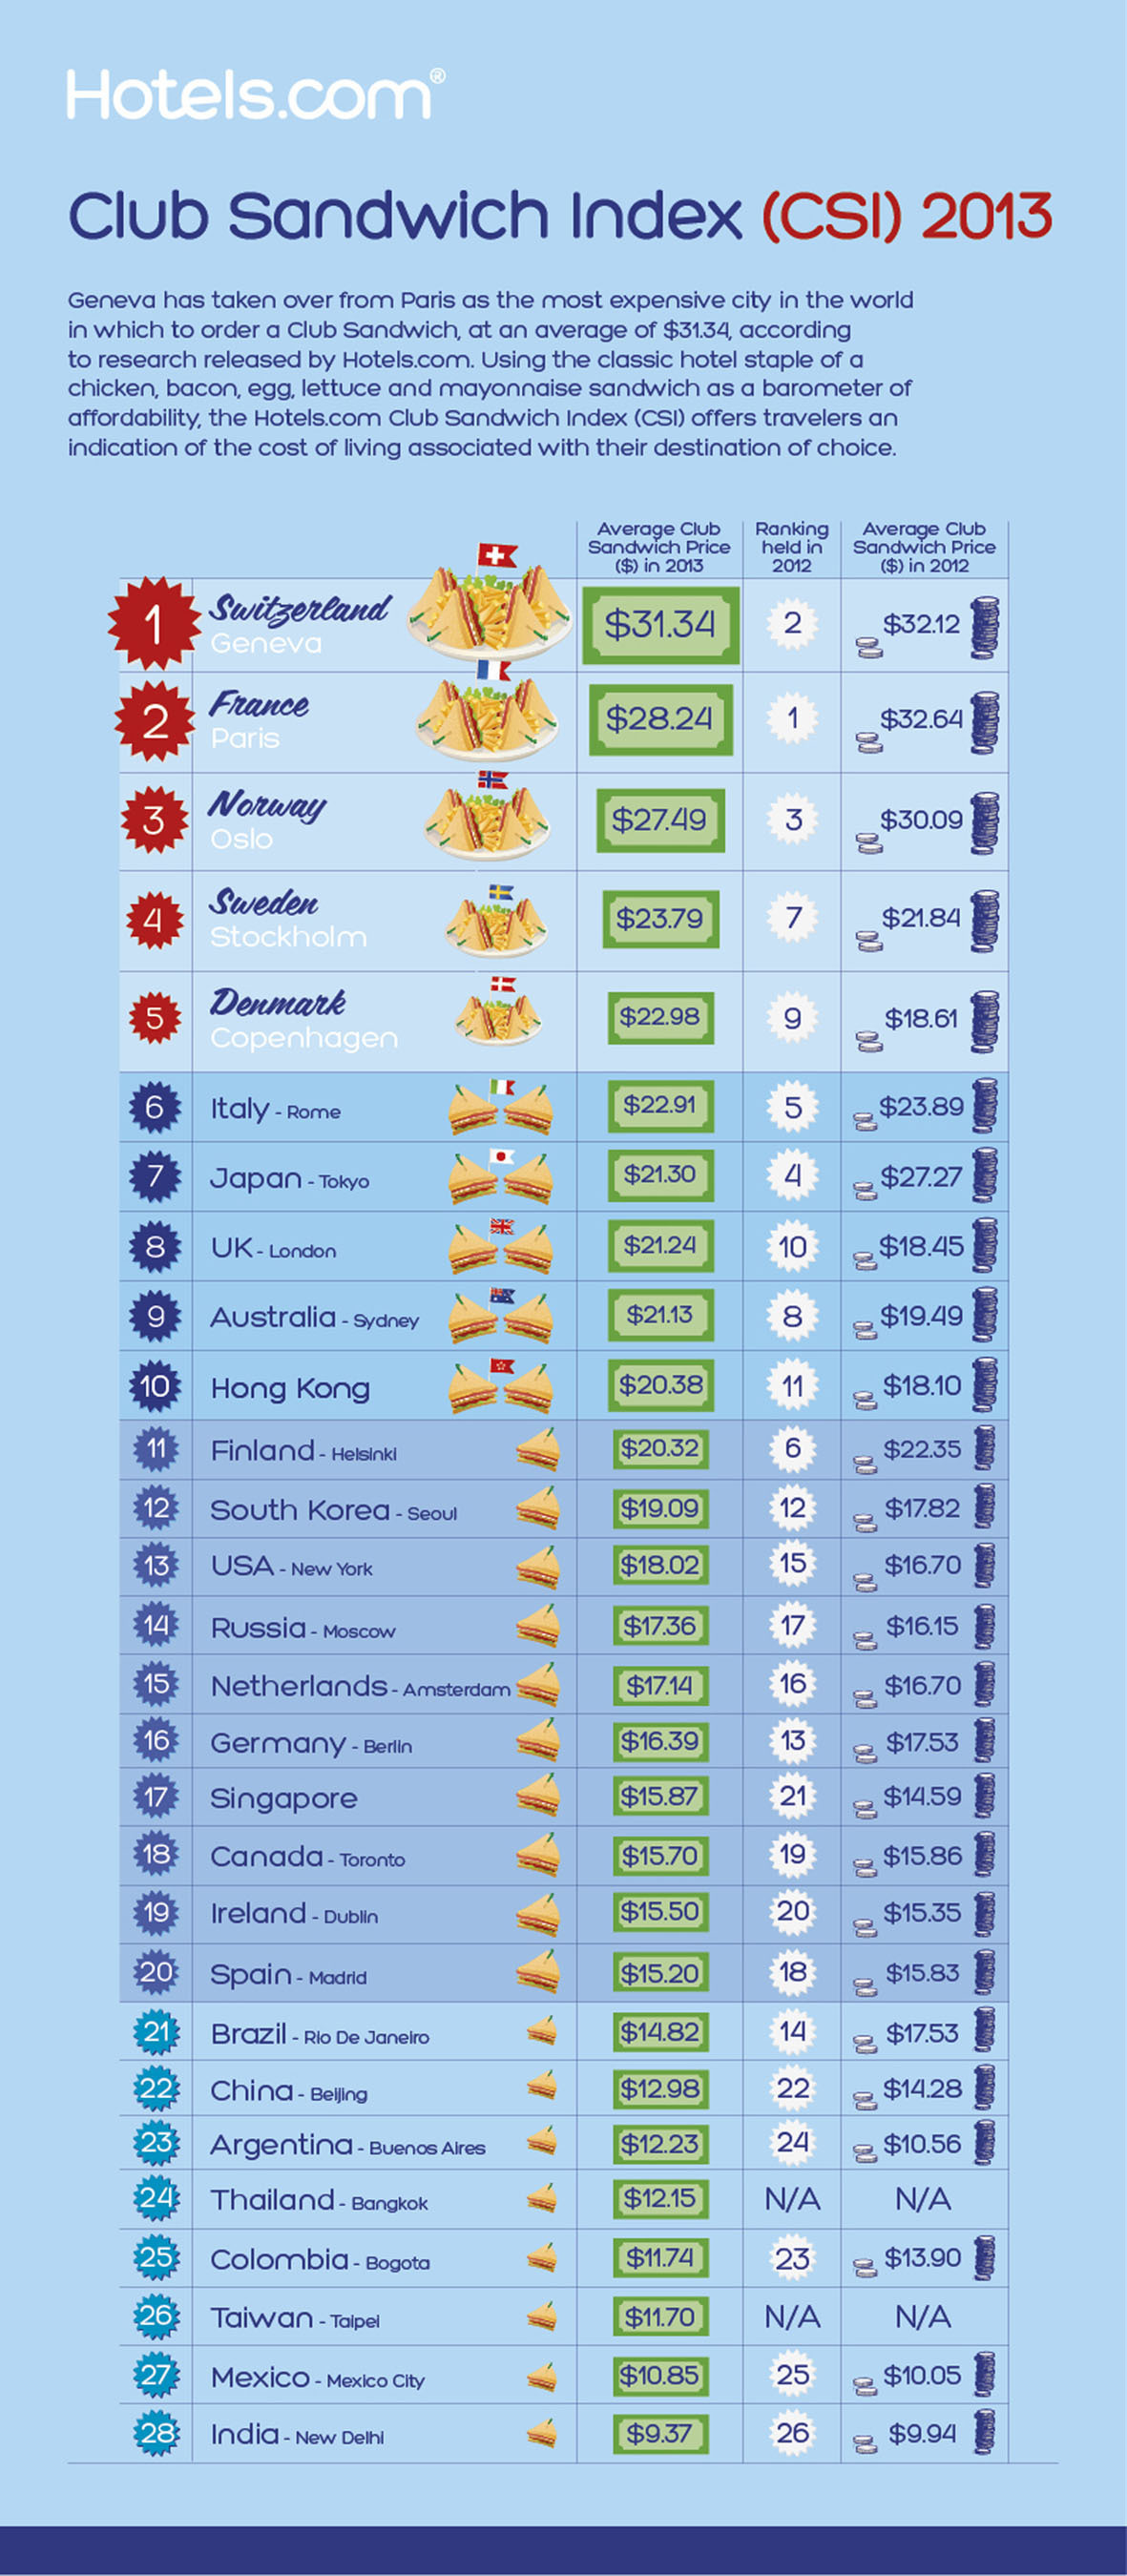 Annual Hotels.com Club Sandwich Index (CSI) names Geneva as the most expensive city for a Club Sandwich, ...